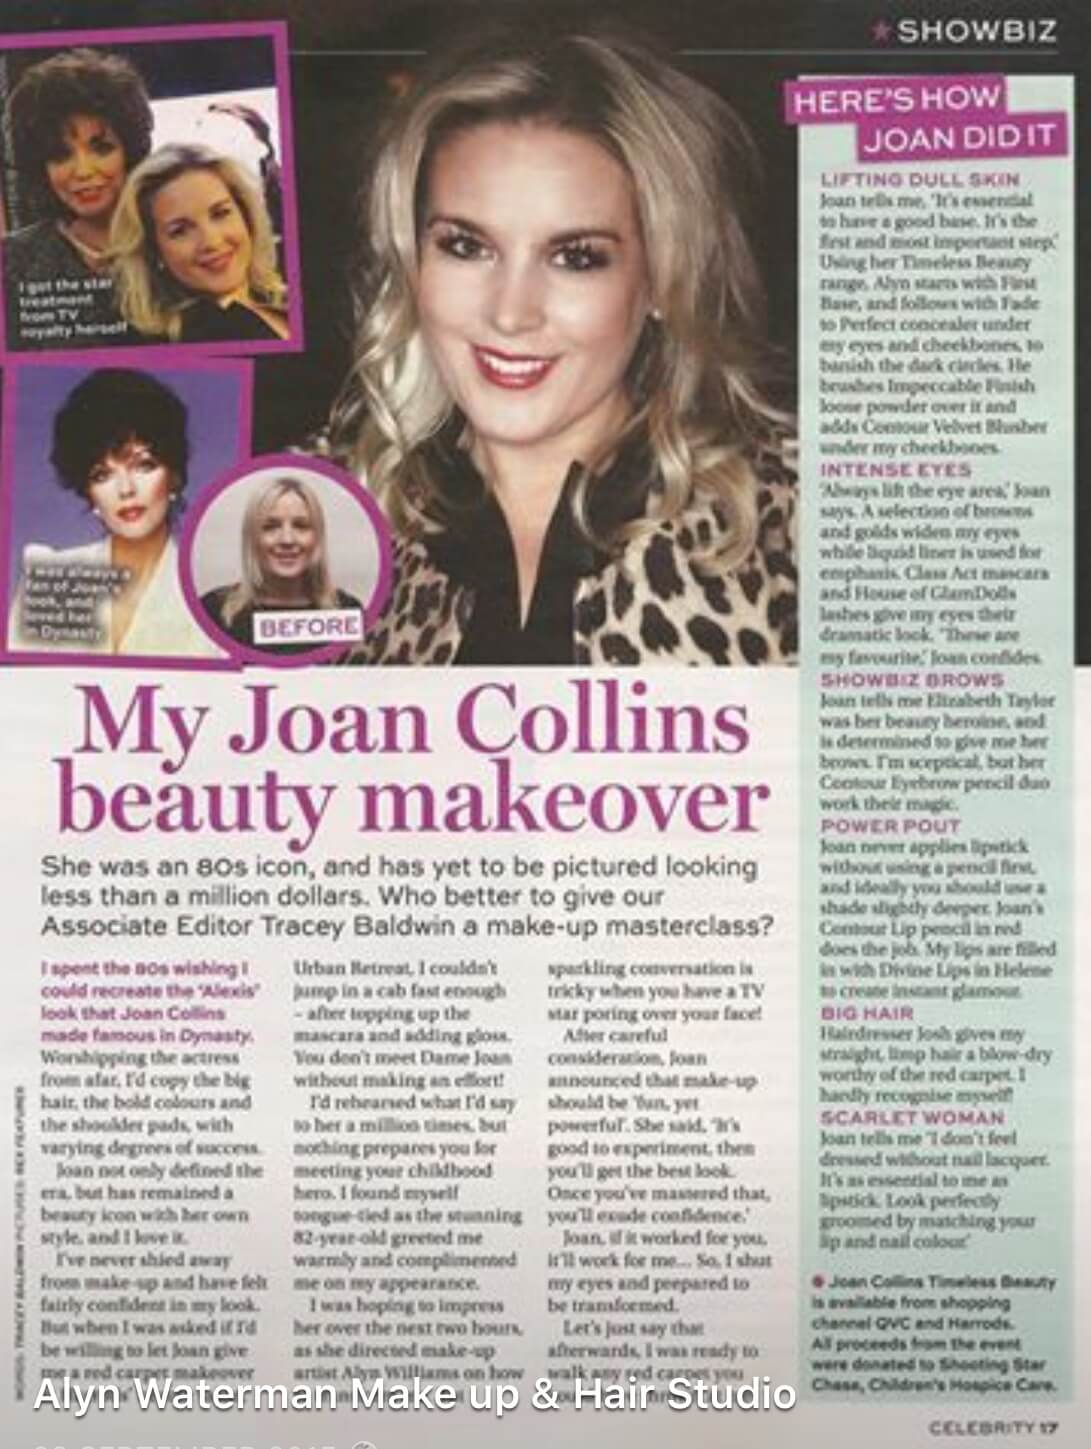 Makeup for Joan Collins Beauty Makeover for Best Magazine